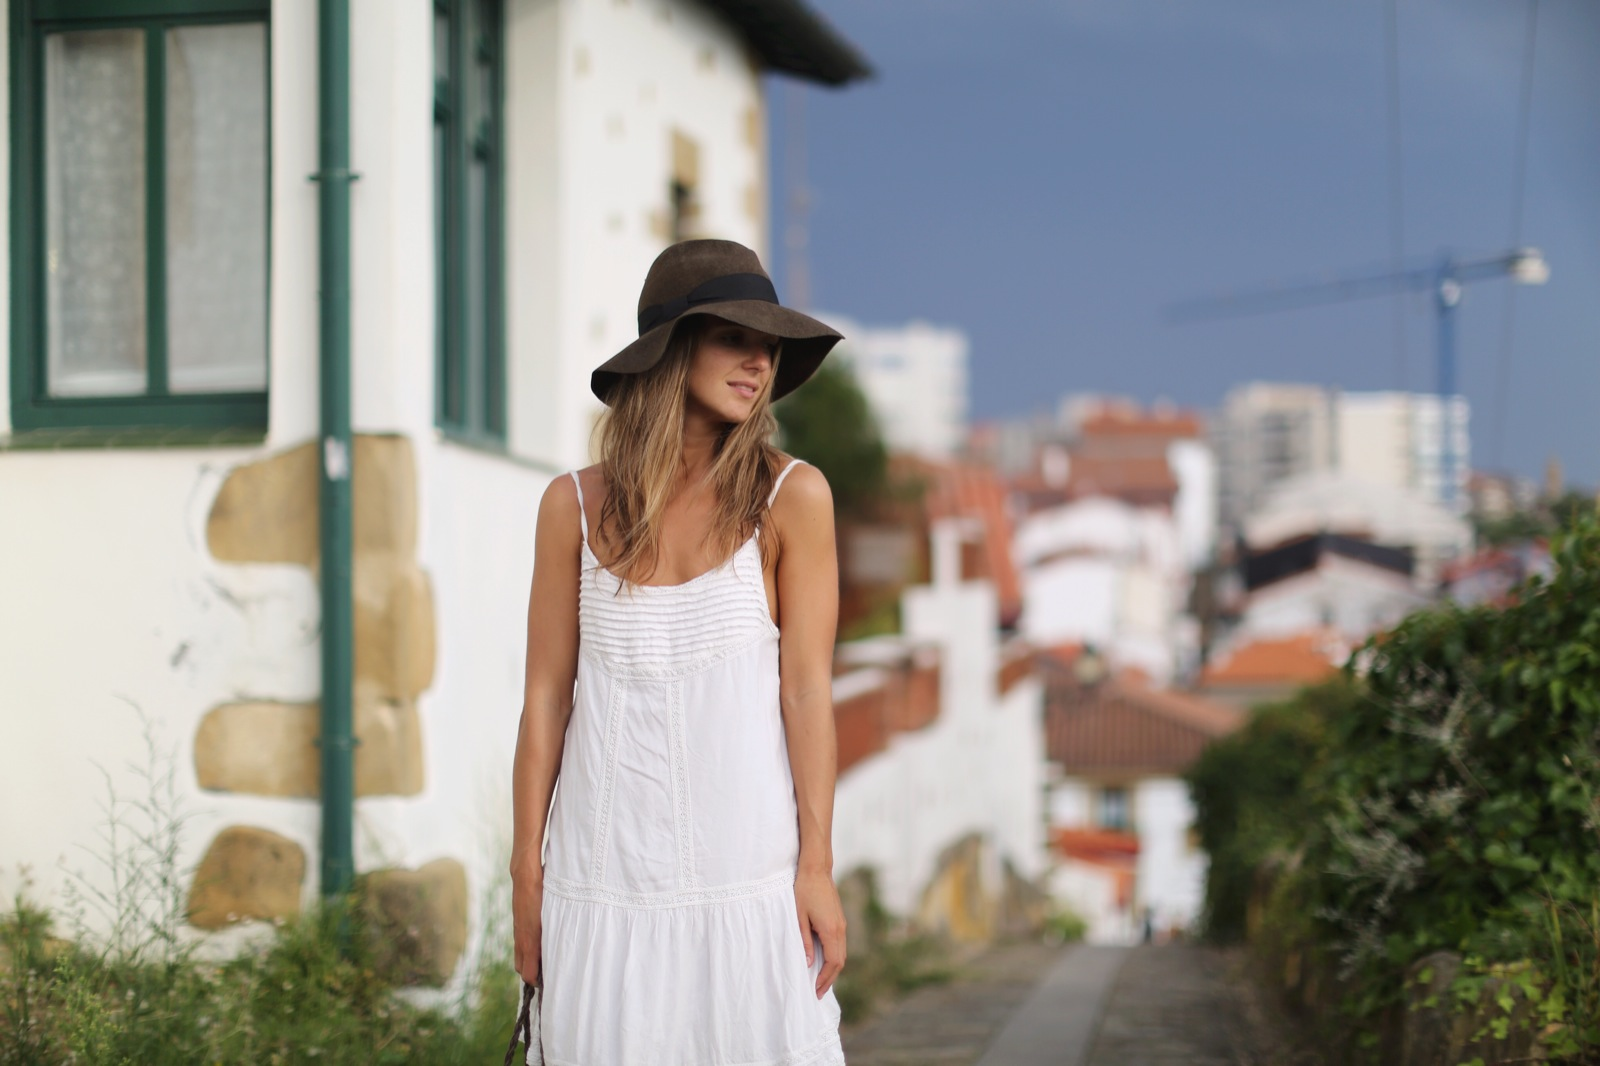 Clochet_suiteblanco_white_boho_dress_zara_fedora_hat_straw_basket_08